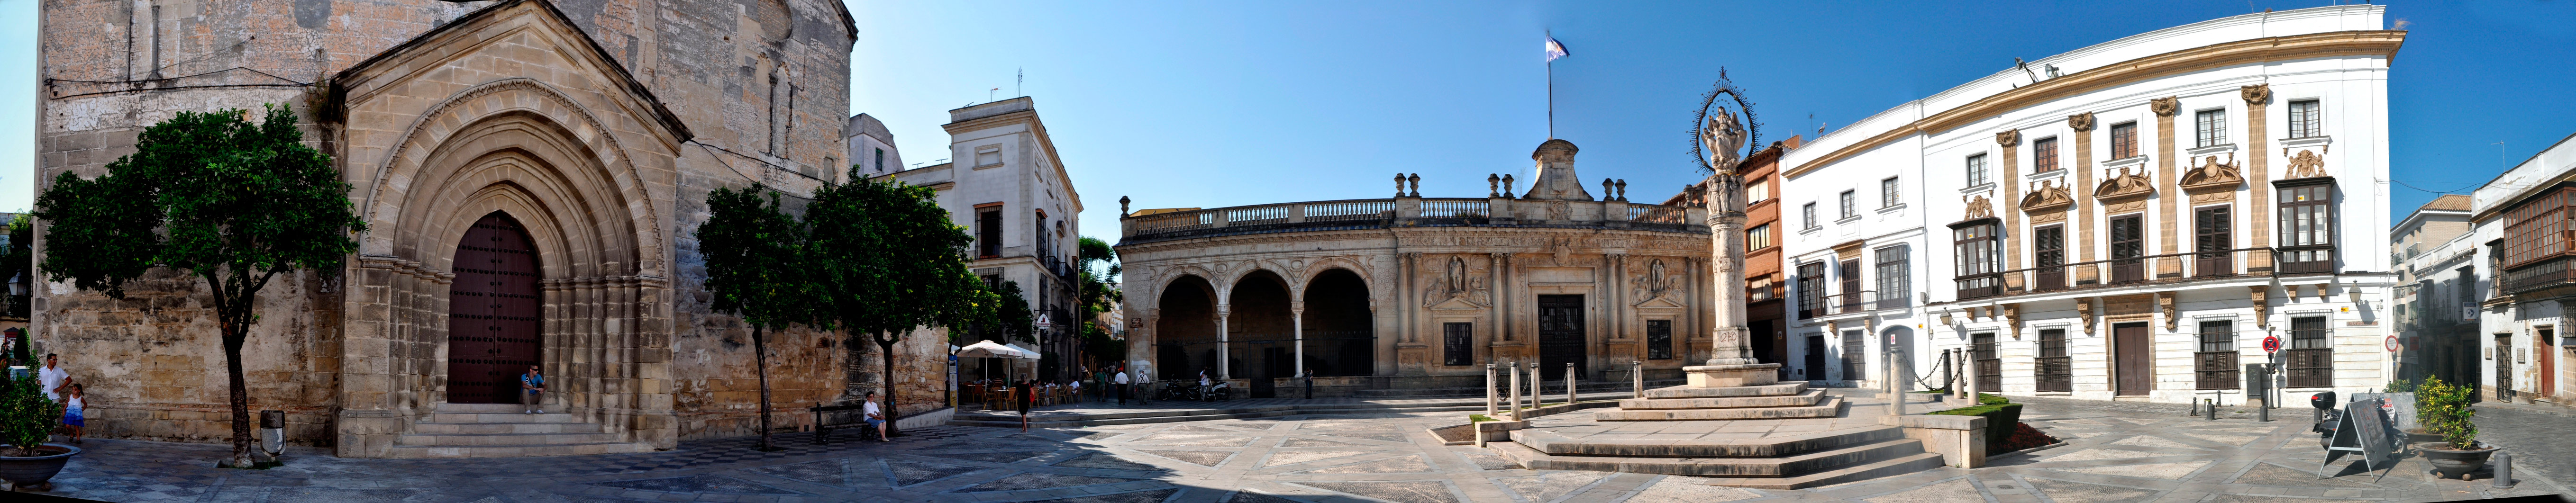 Plaza_Asuncion_Jerez_Panoramica-low